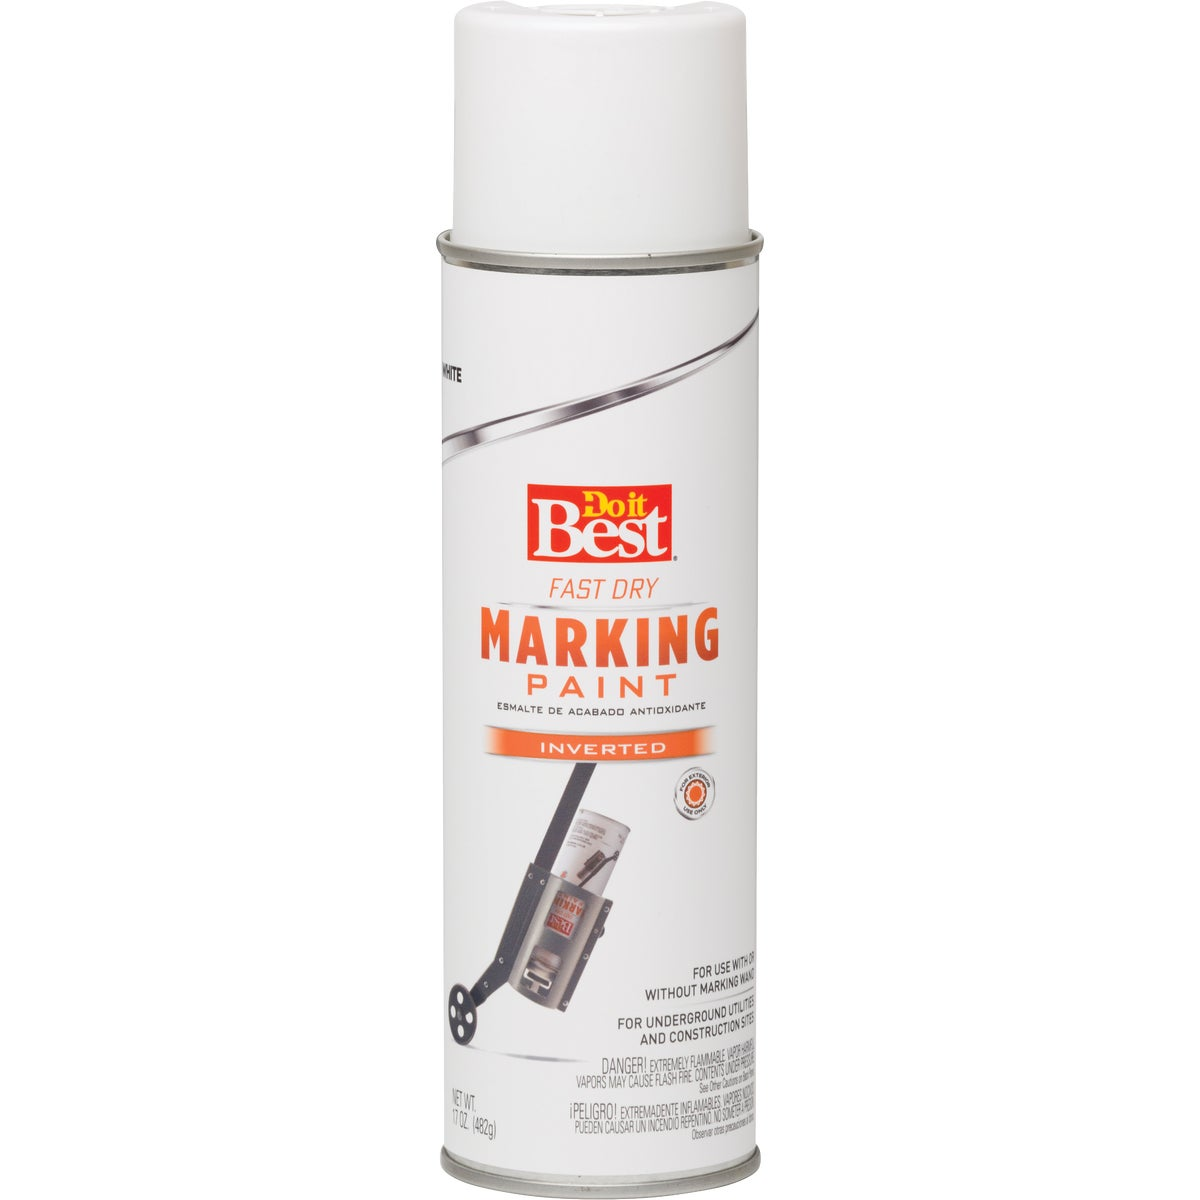 WHITE MARKING PAINT - 4002 by Rustoleum